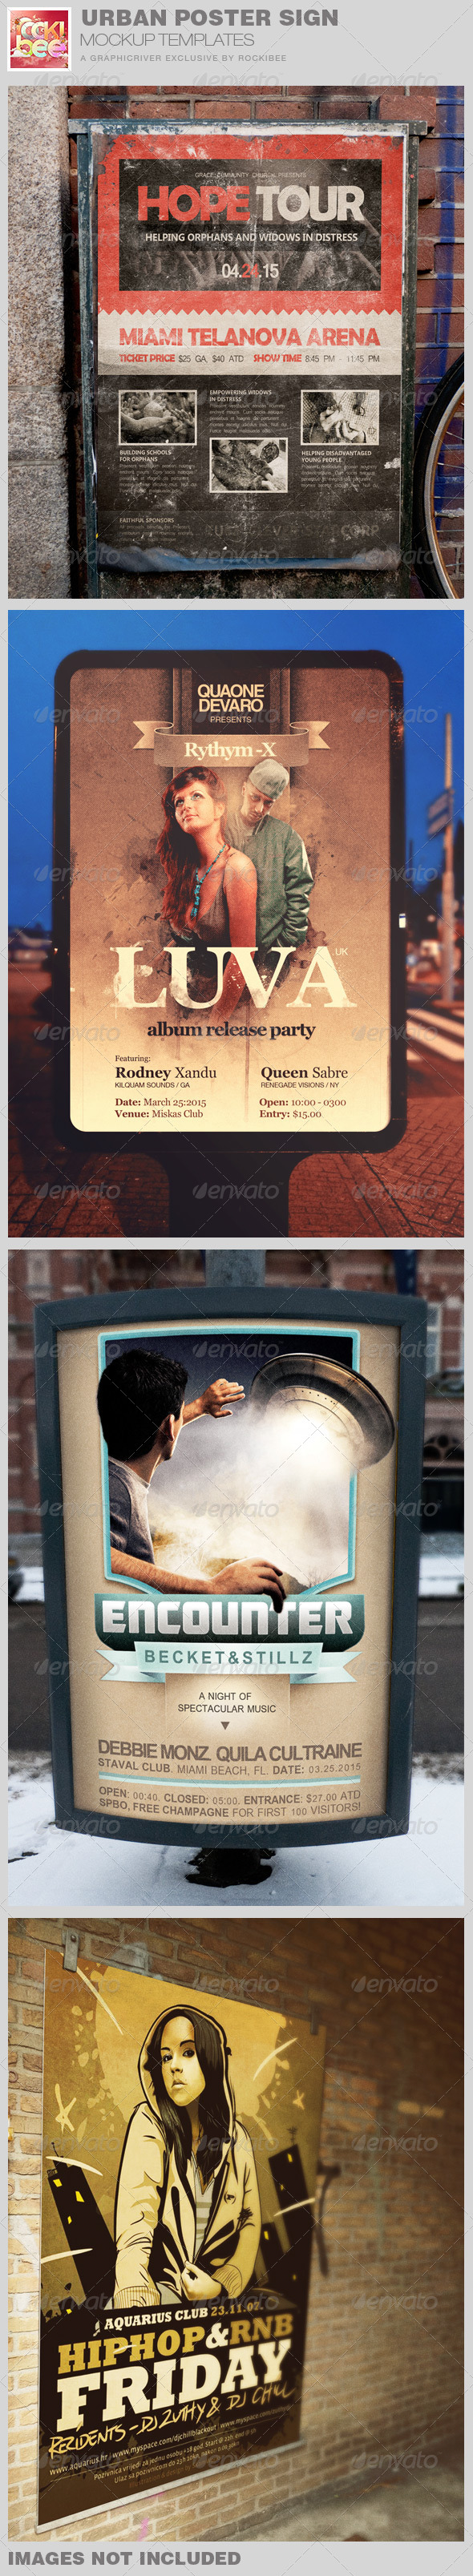 GraphicRiver Urban Poster Sign Mockup Templates 7920829